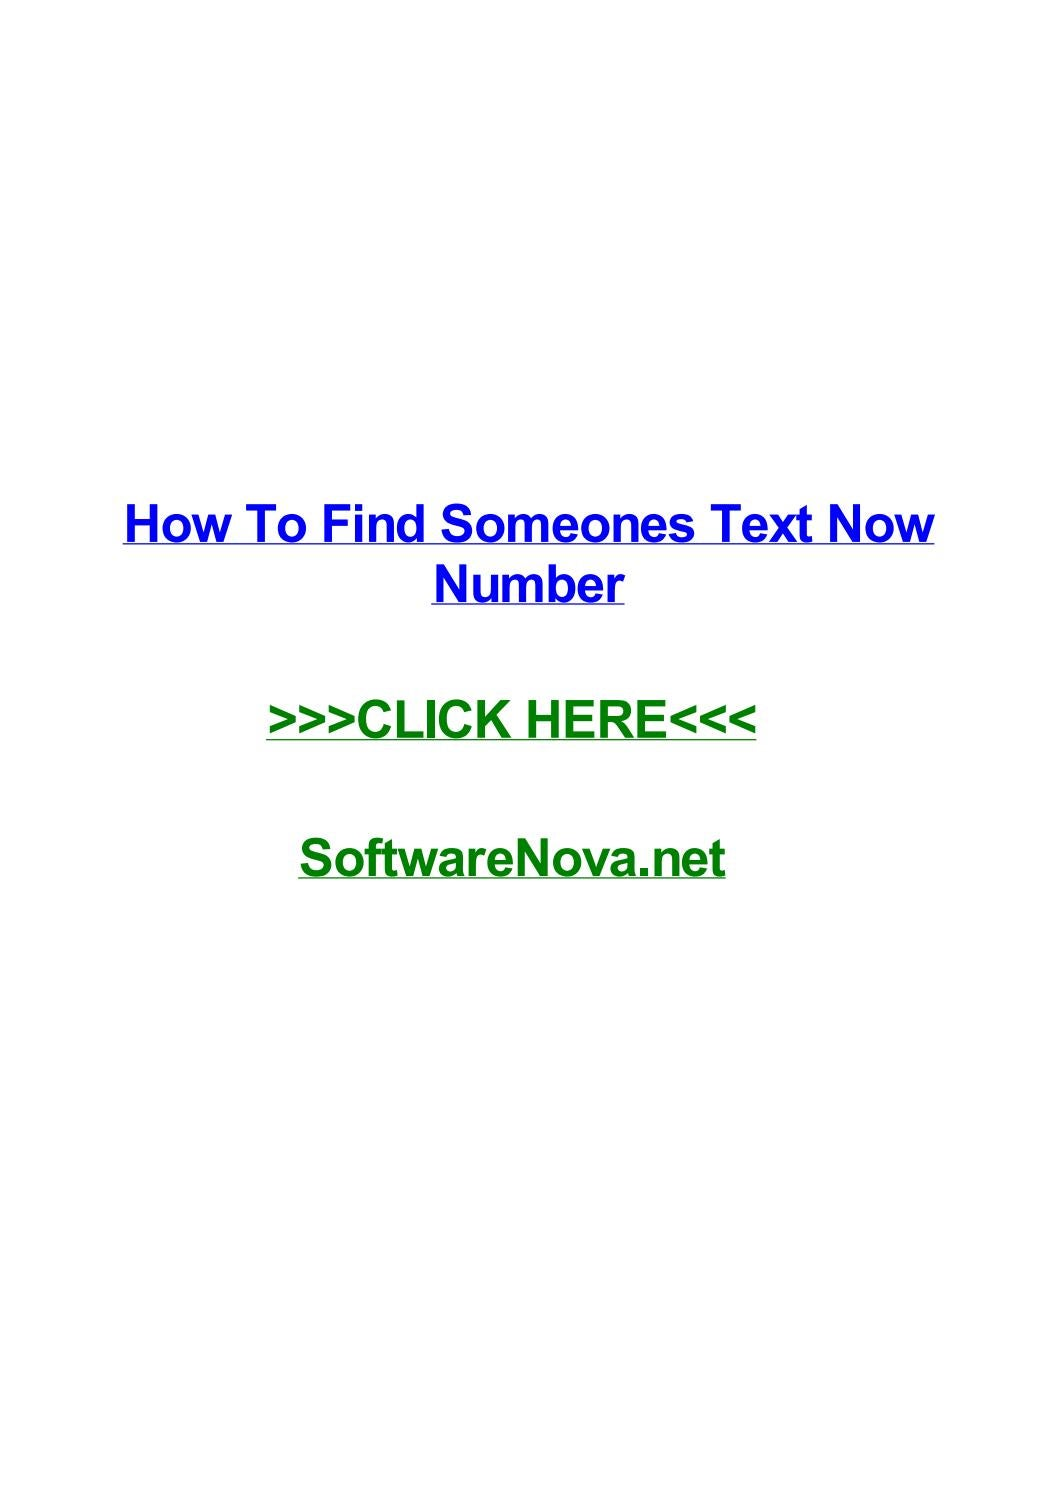 How to find someones text now number by jennaelbbw - issuu